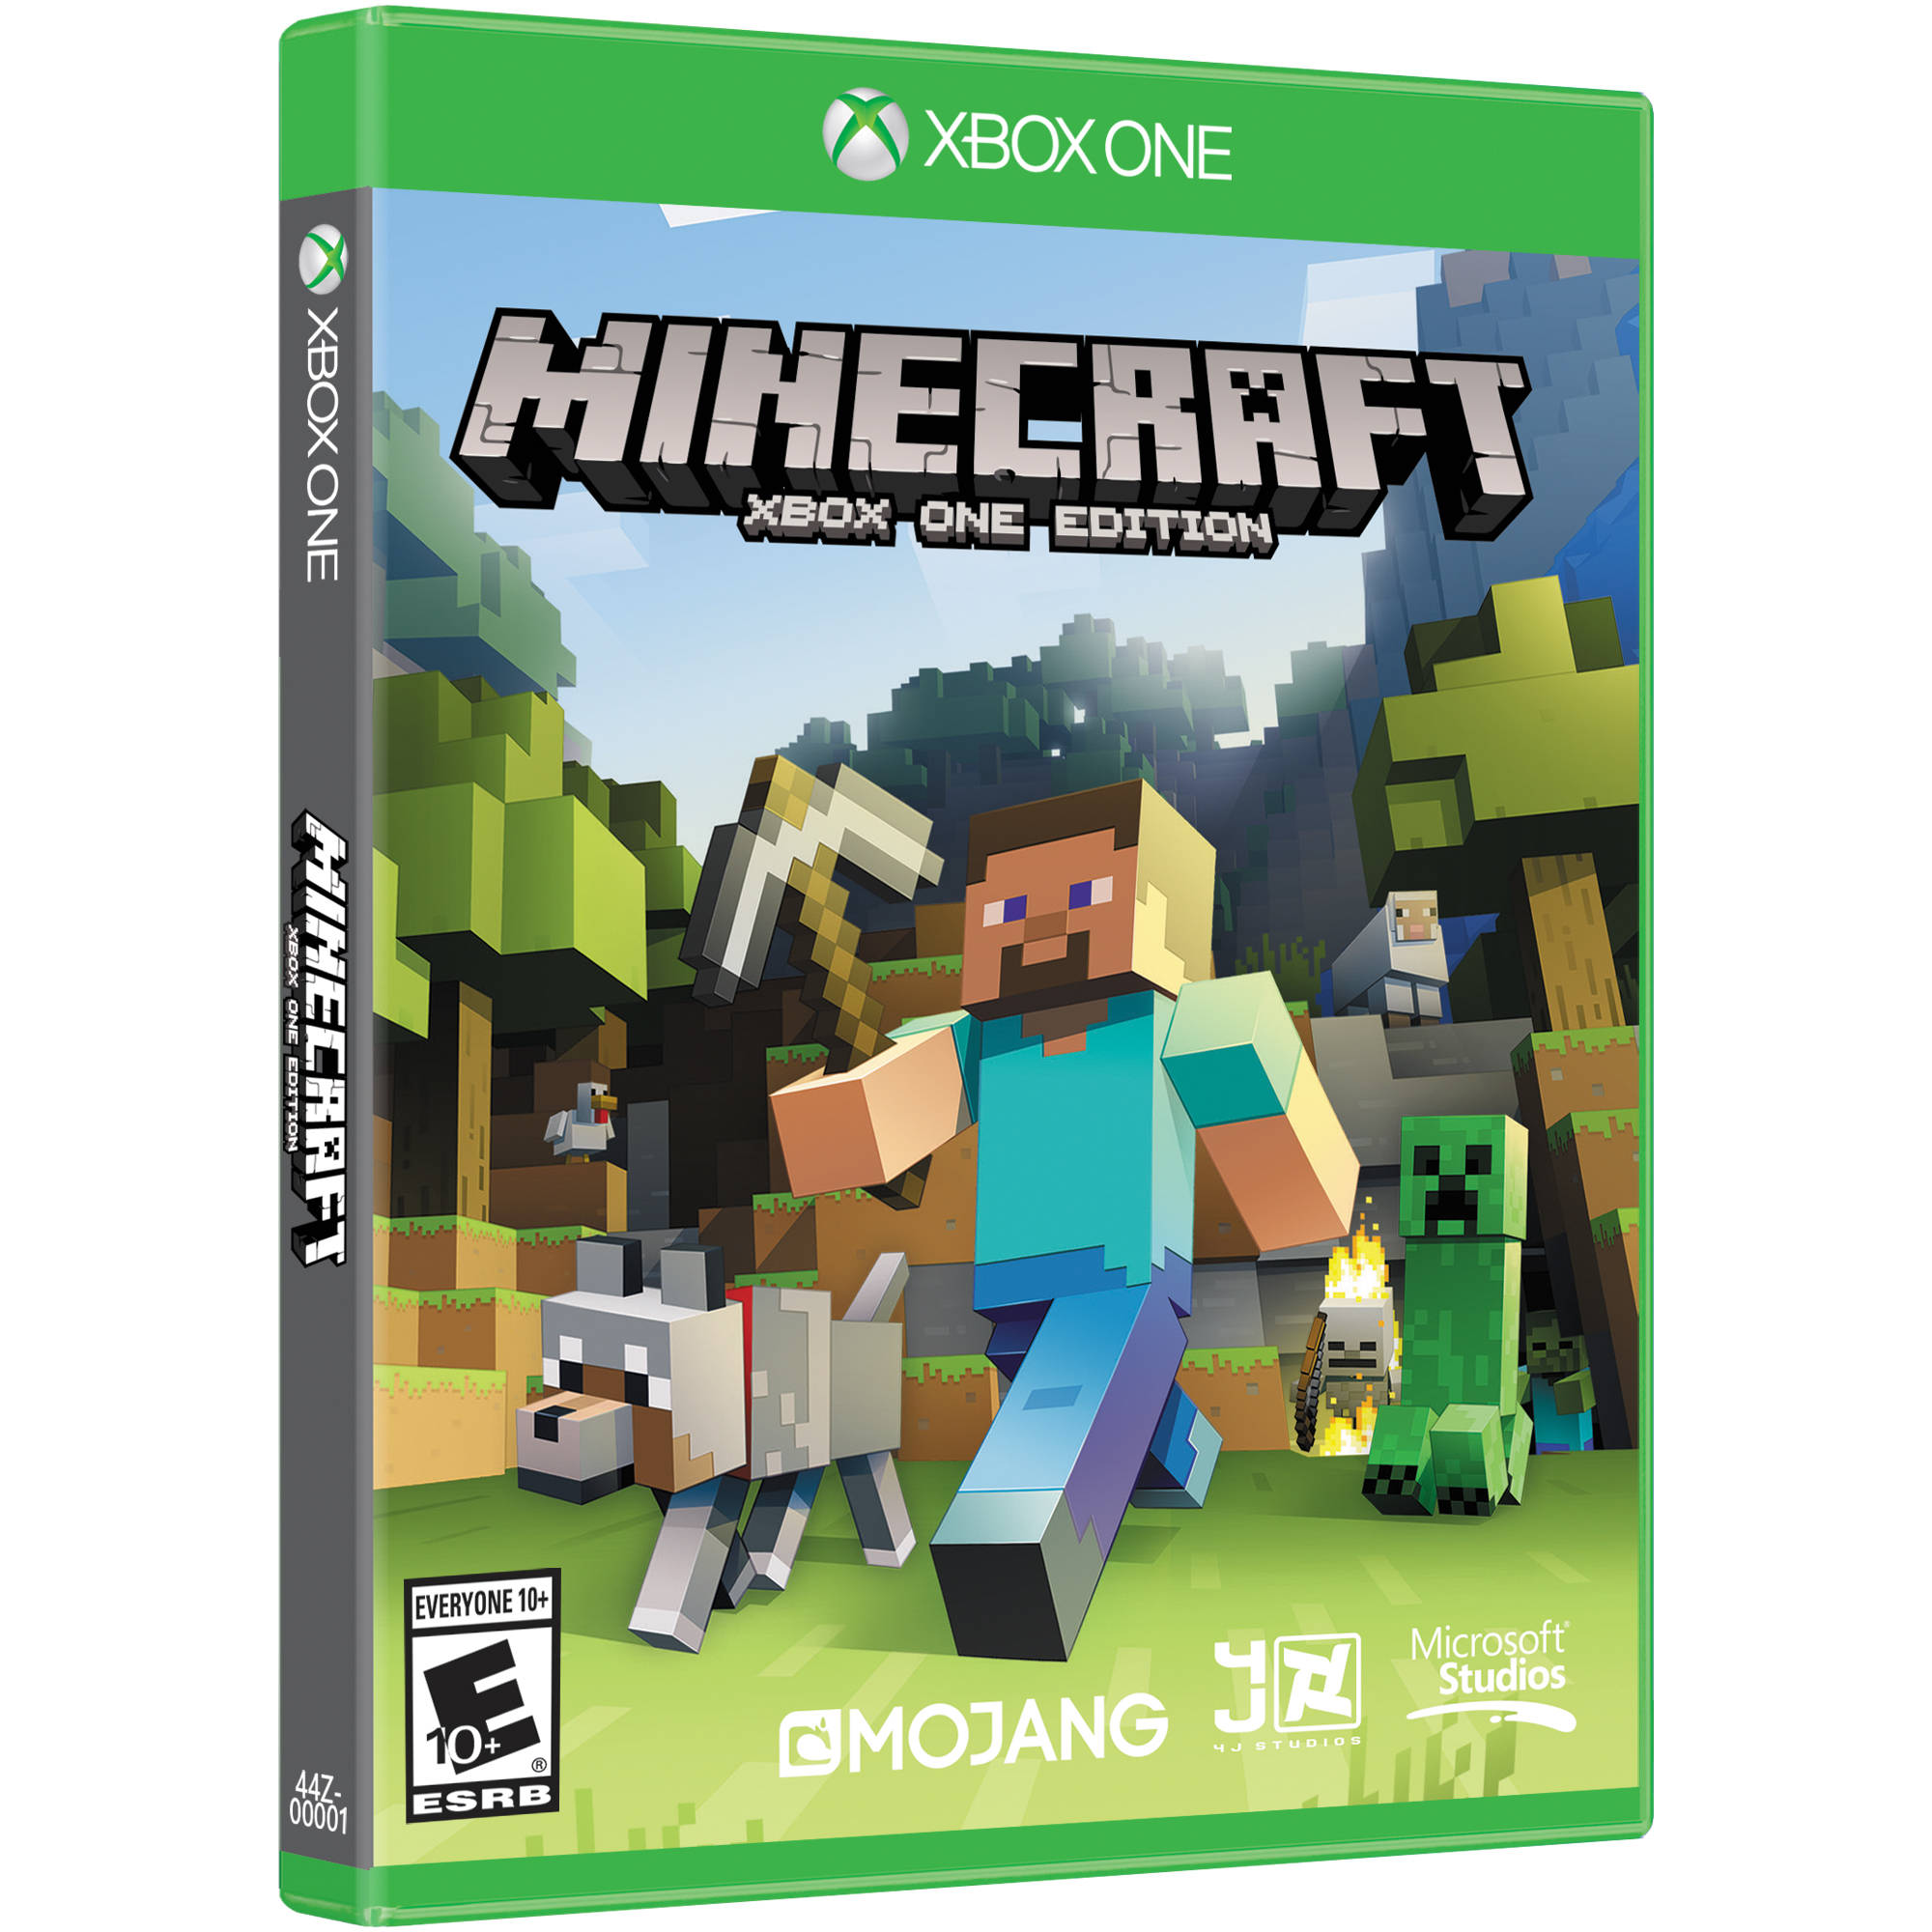 MOJANG Minecraft Xbox One Edition